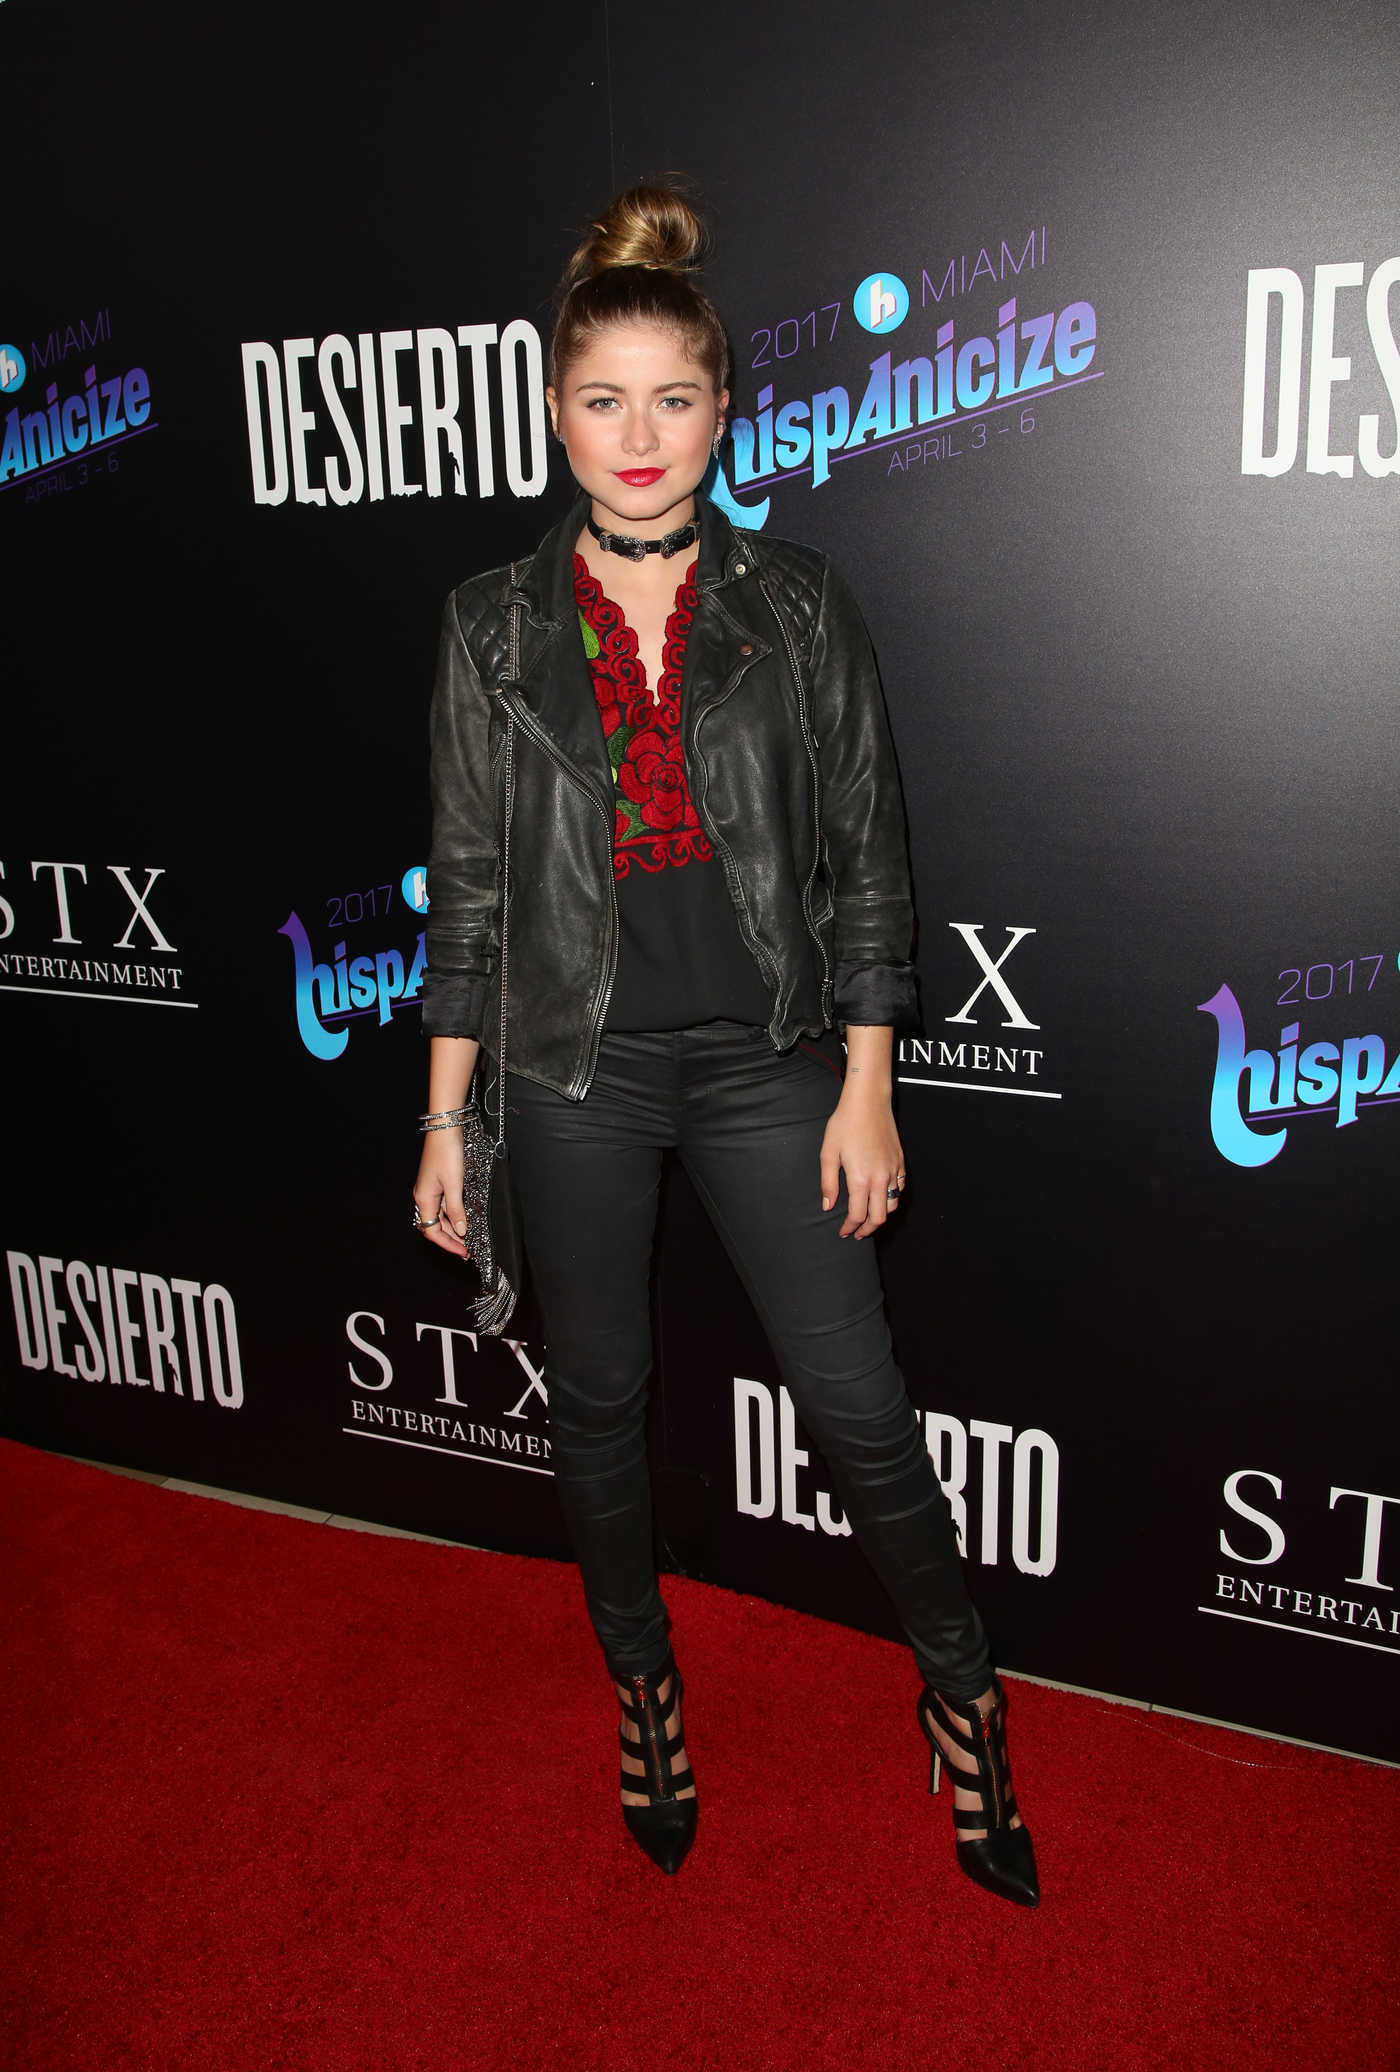 Sofia Reyes at the Desierto Premiere in Los Angeles 10/11/2016